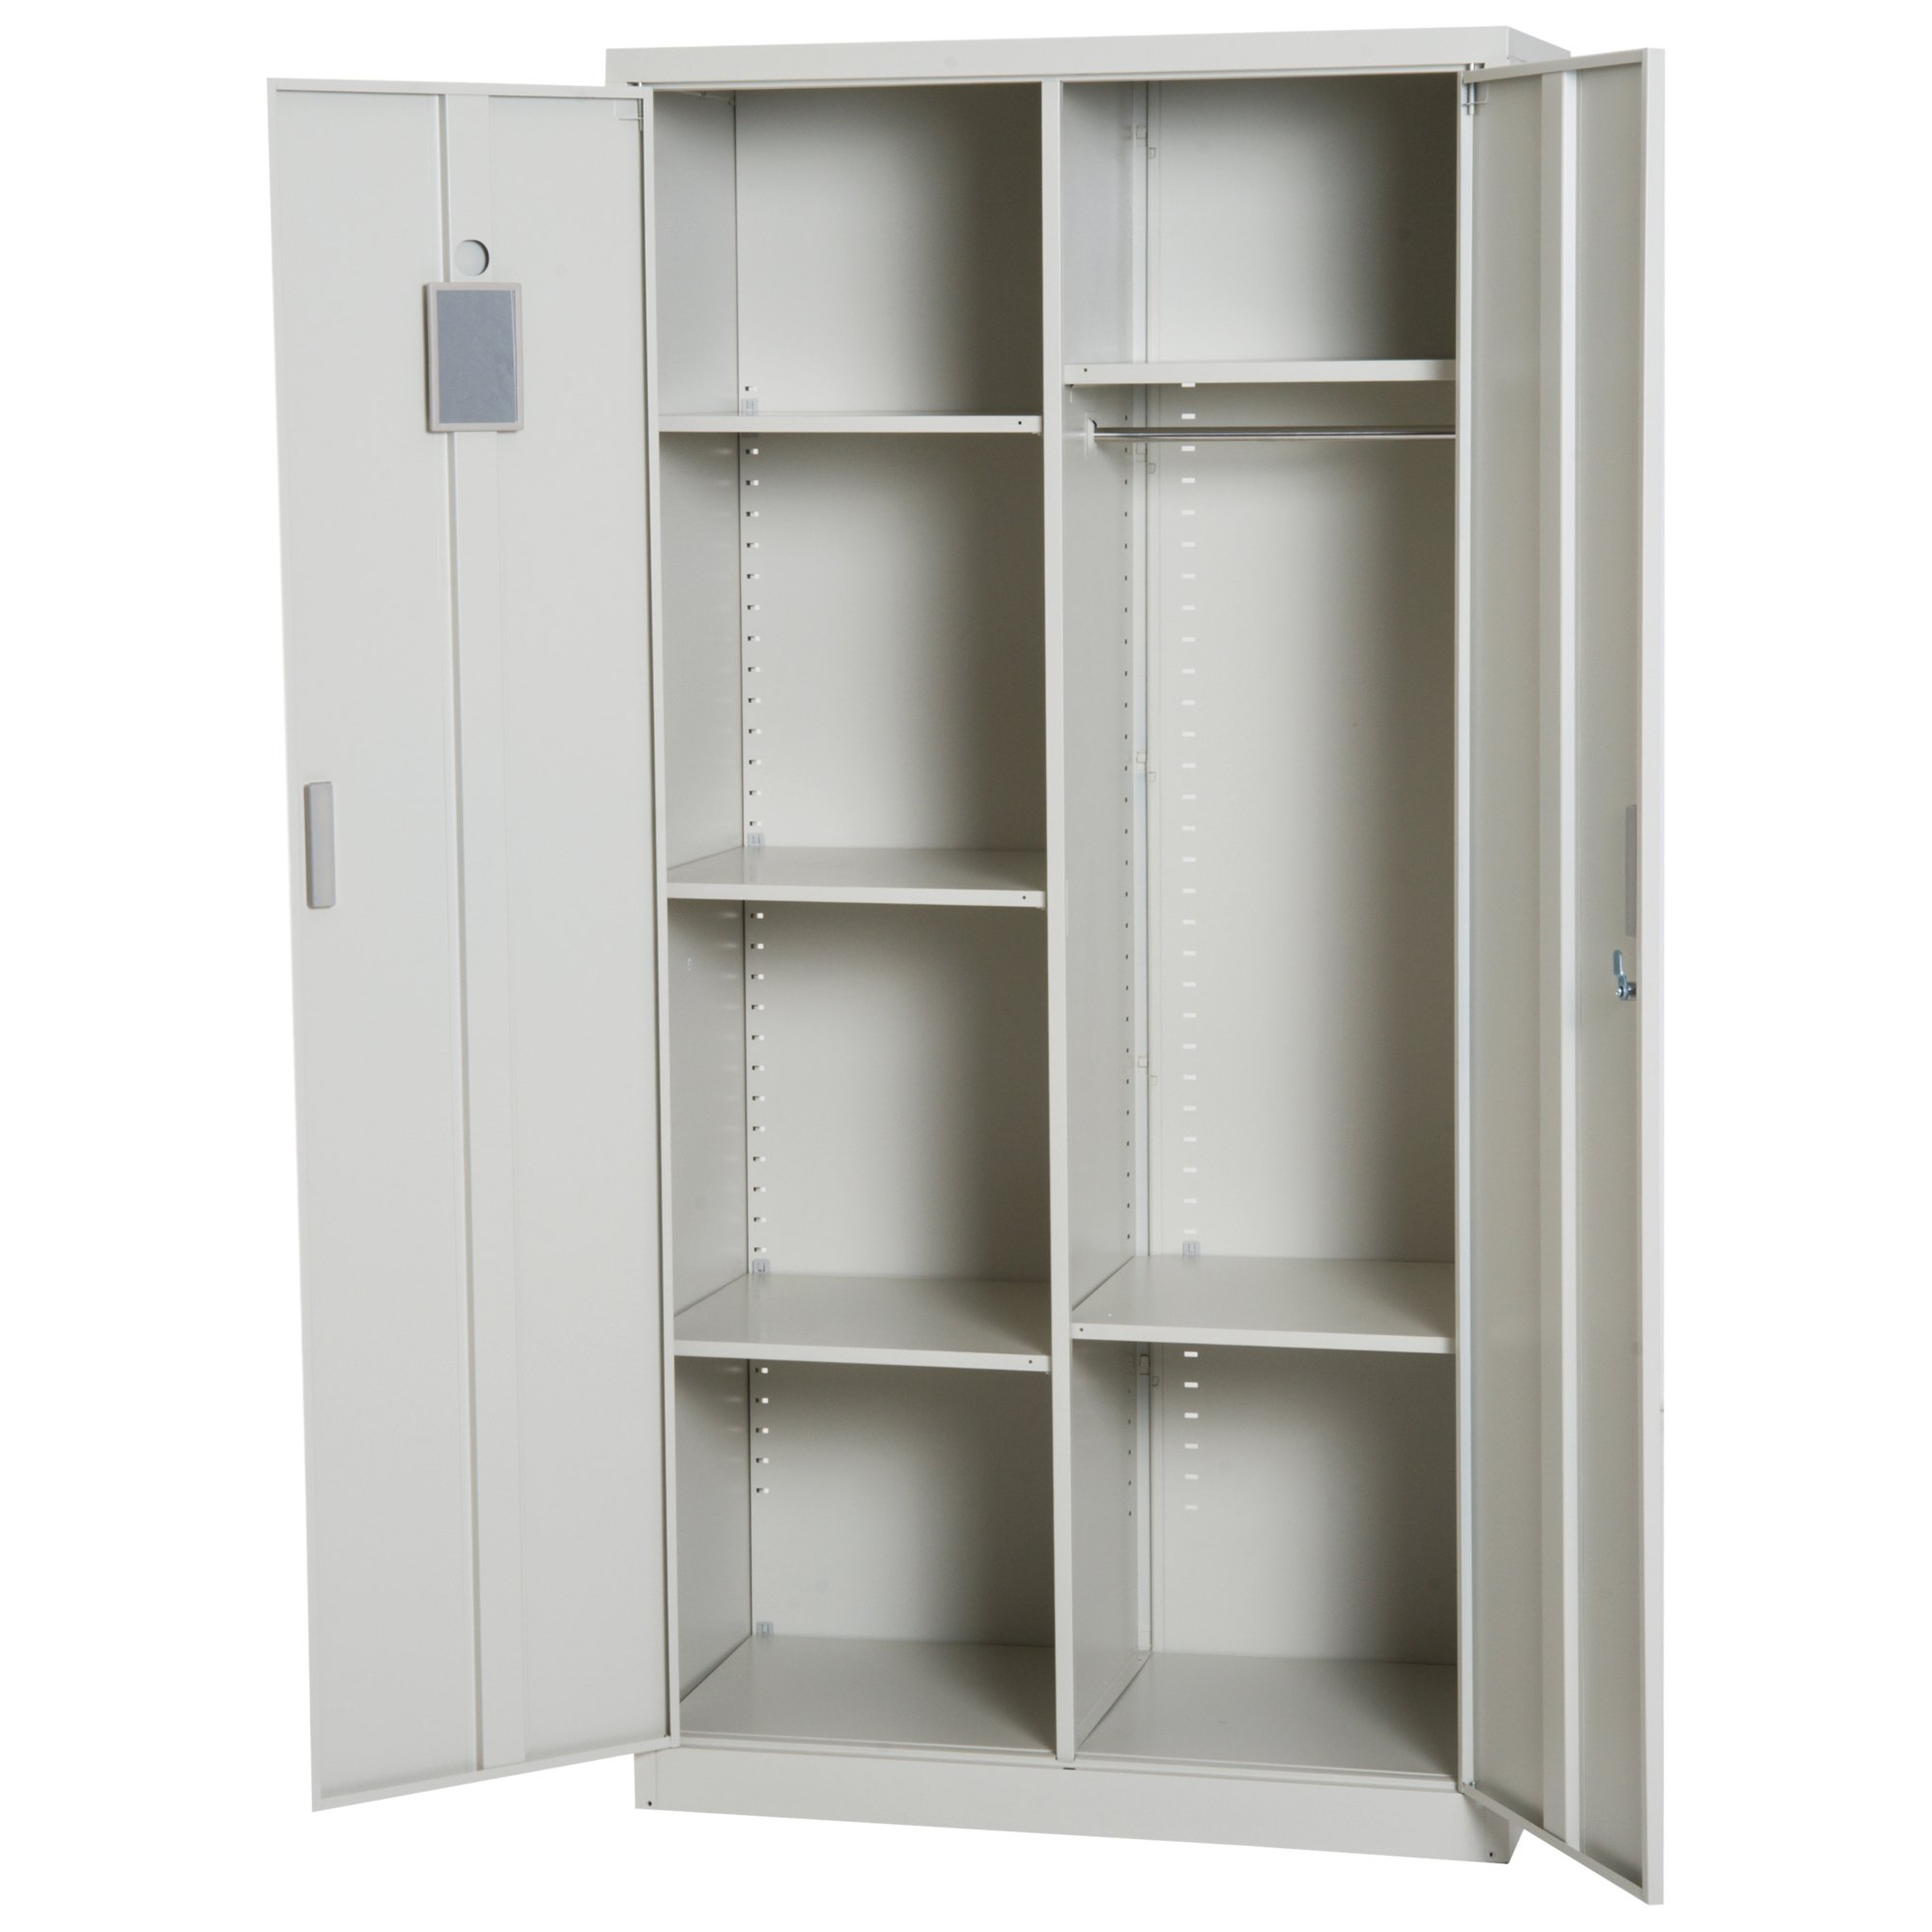 "HOMCOM 71"" Cold Rolled Steel Lockable Garage Storage Cabinet with Shelves - Cream White"